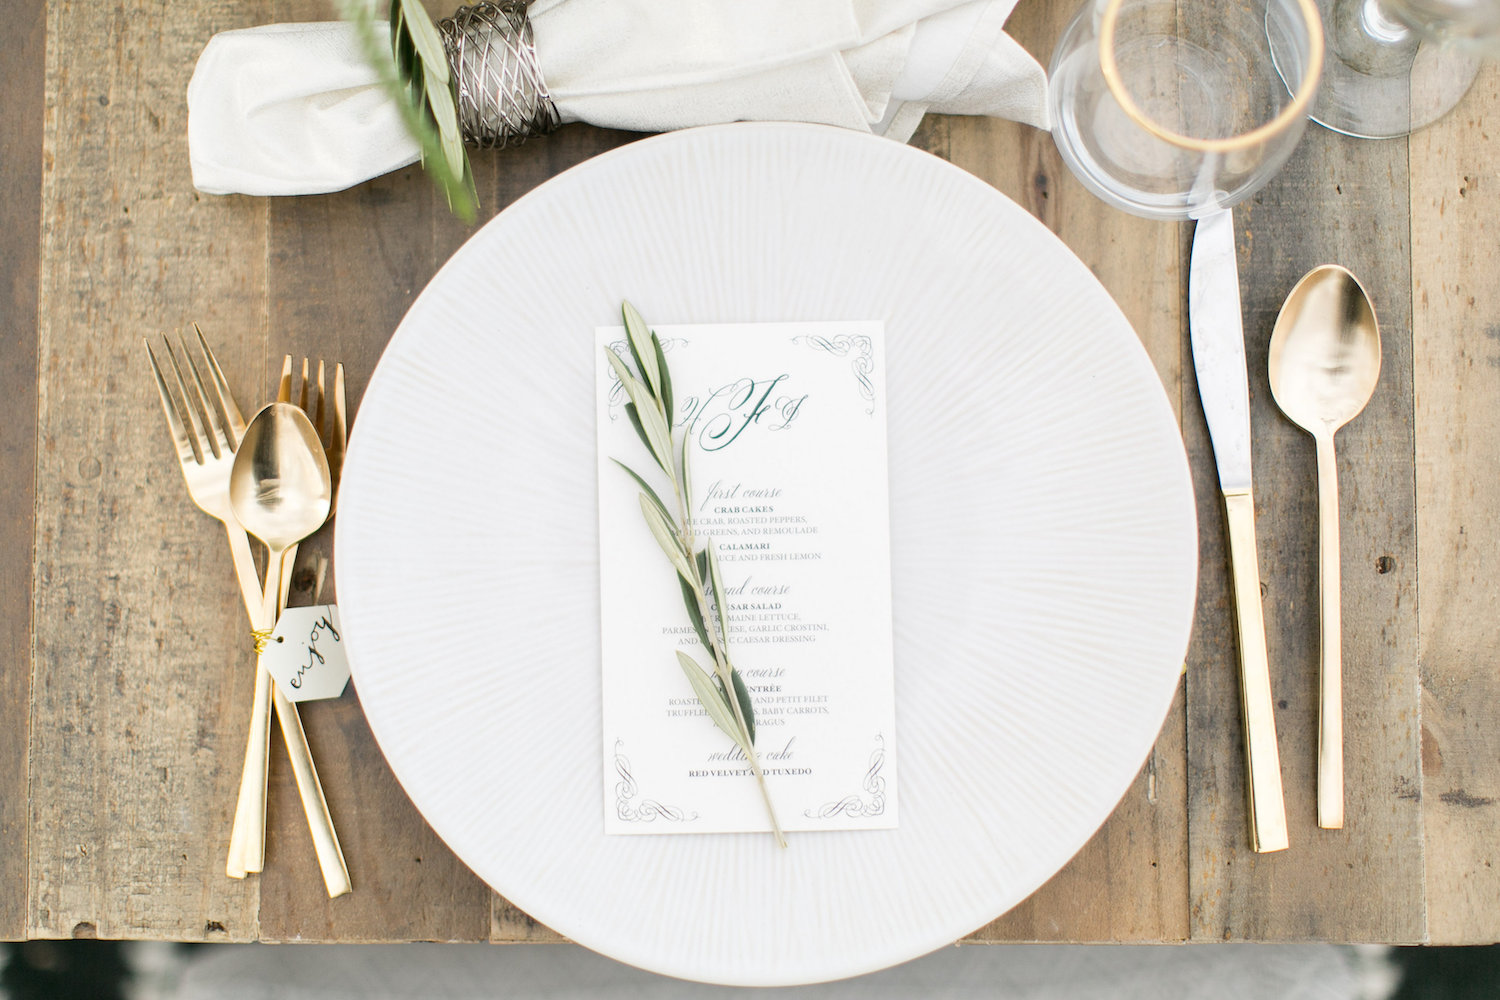 desert wedding inspiration menu and tag accessories